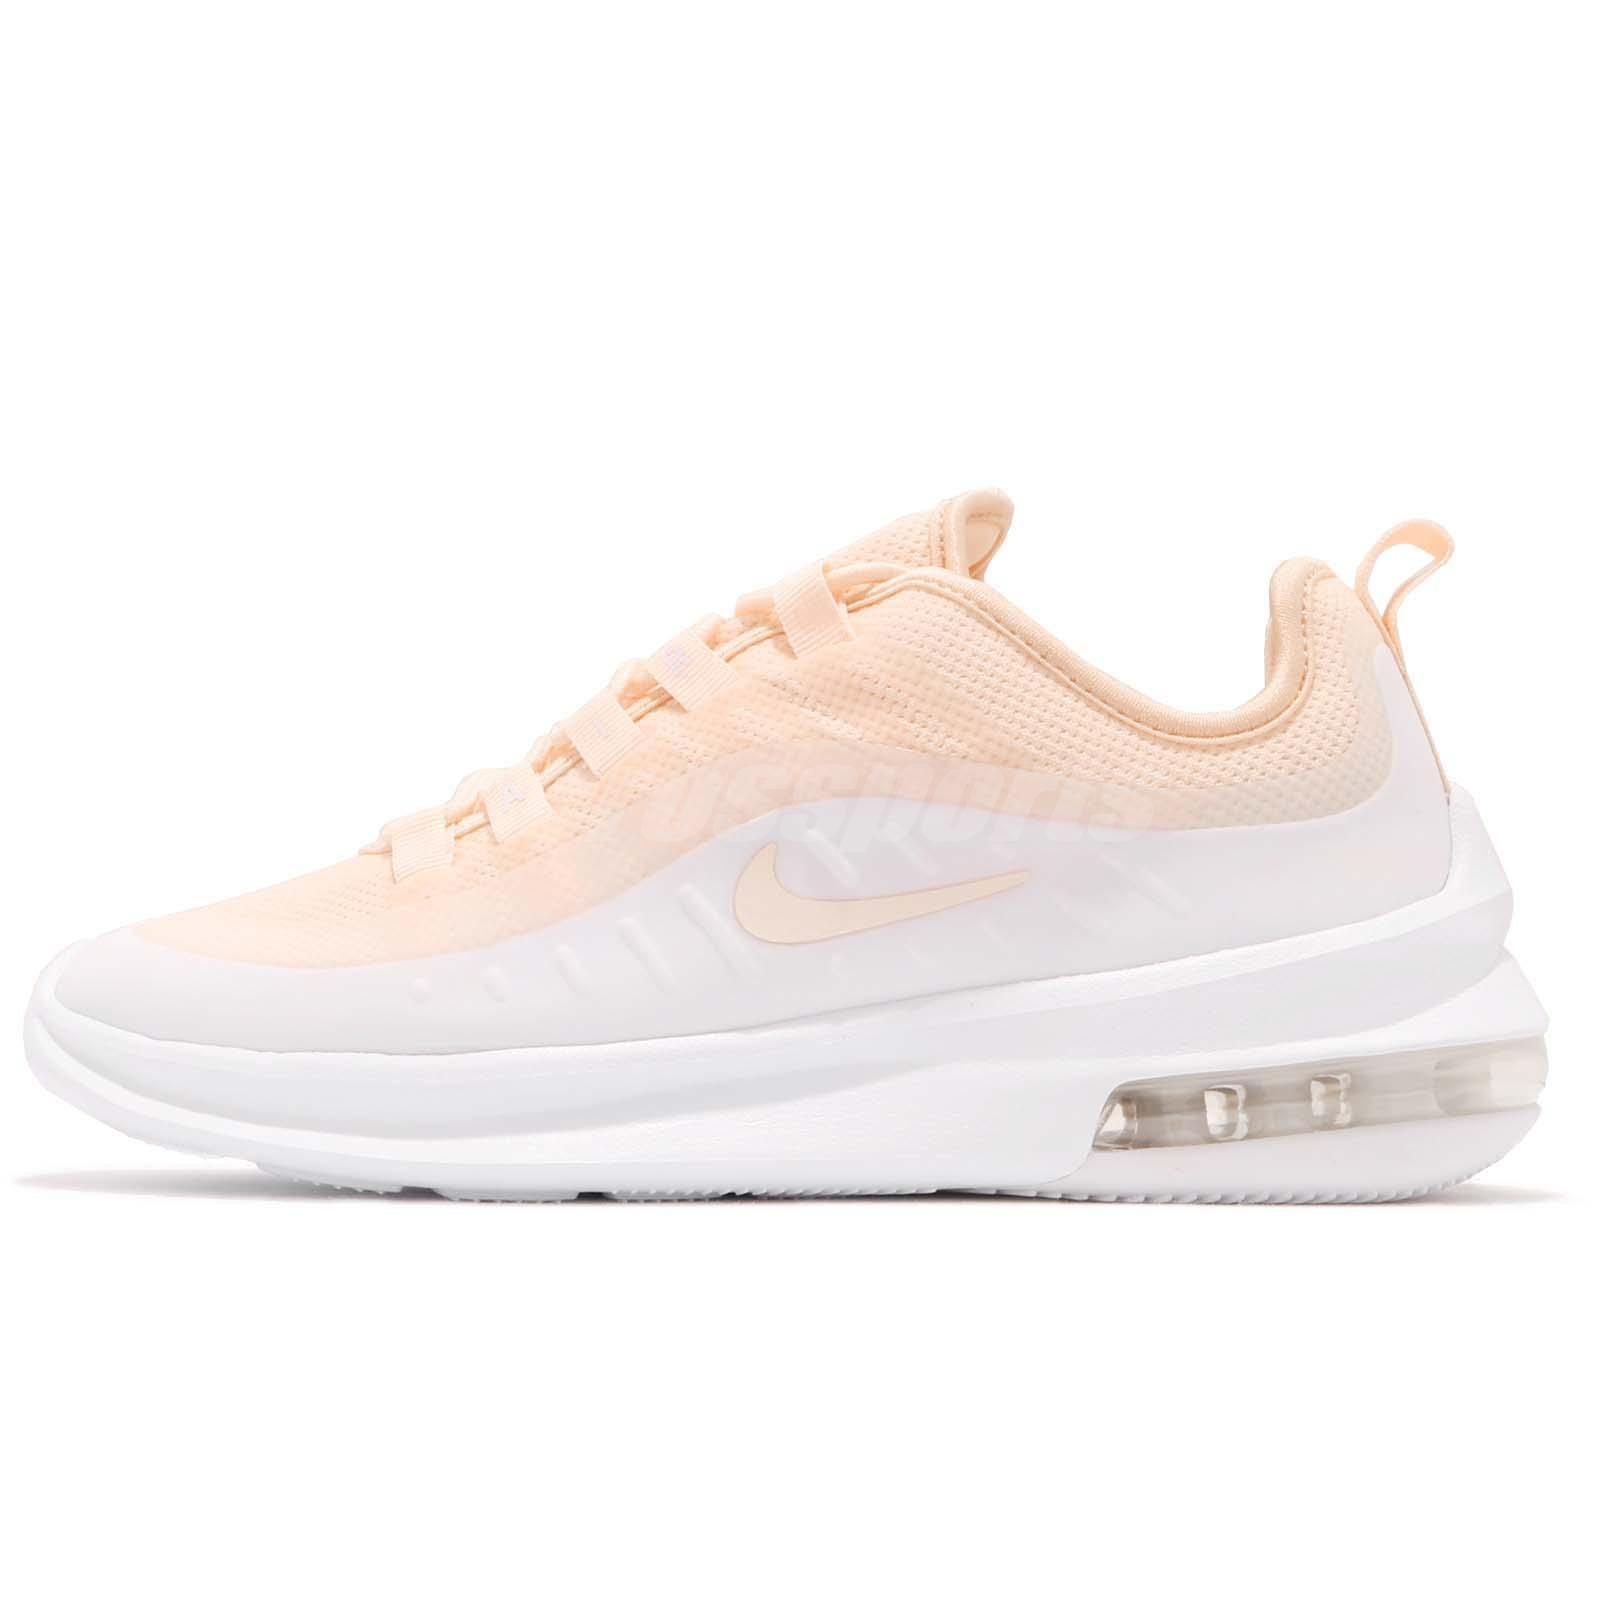 c3a86c25c76 Nike Wmns Air Max Axis Guava Ice White Women Running Shoes Sneakers AA2168- 800